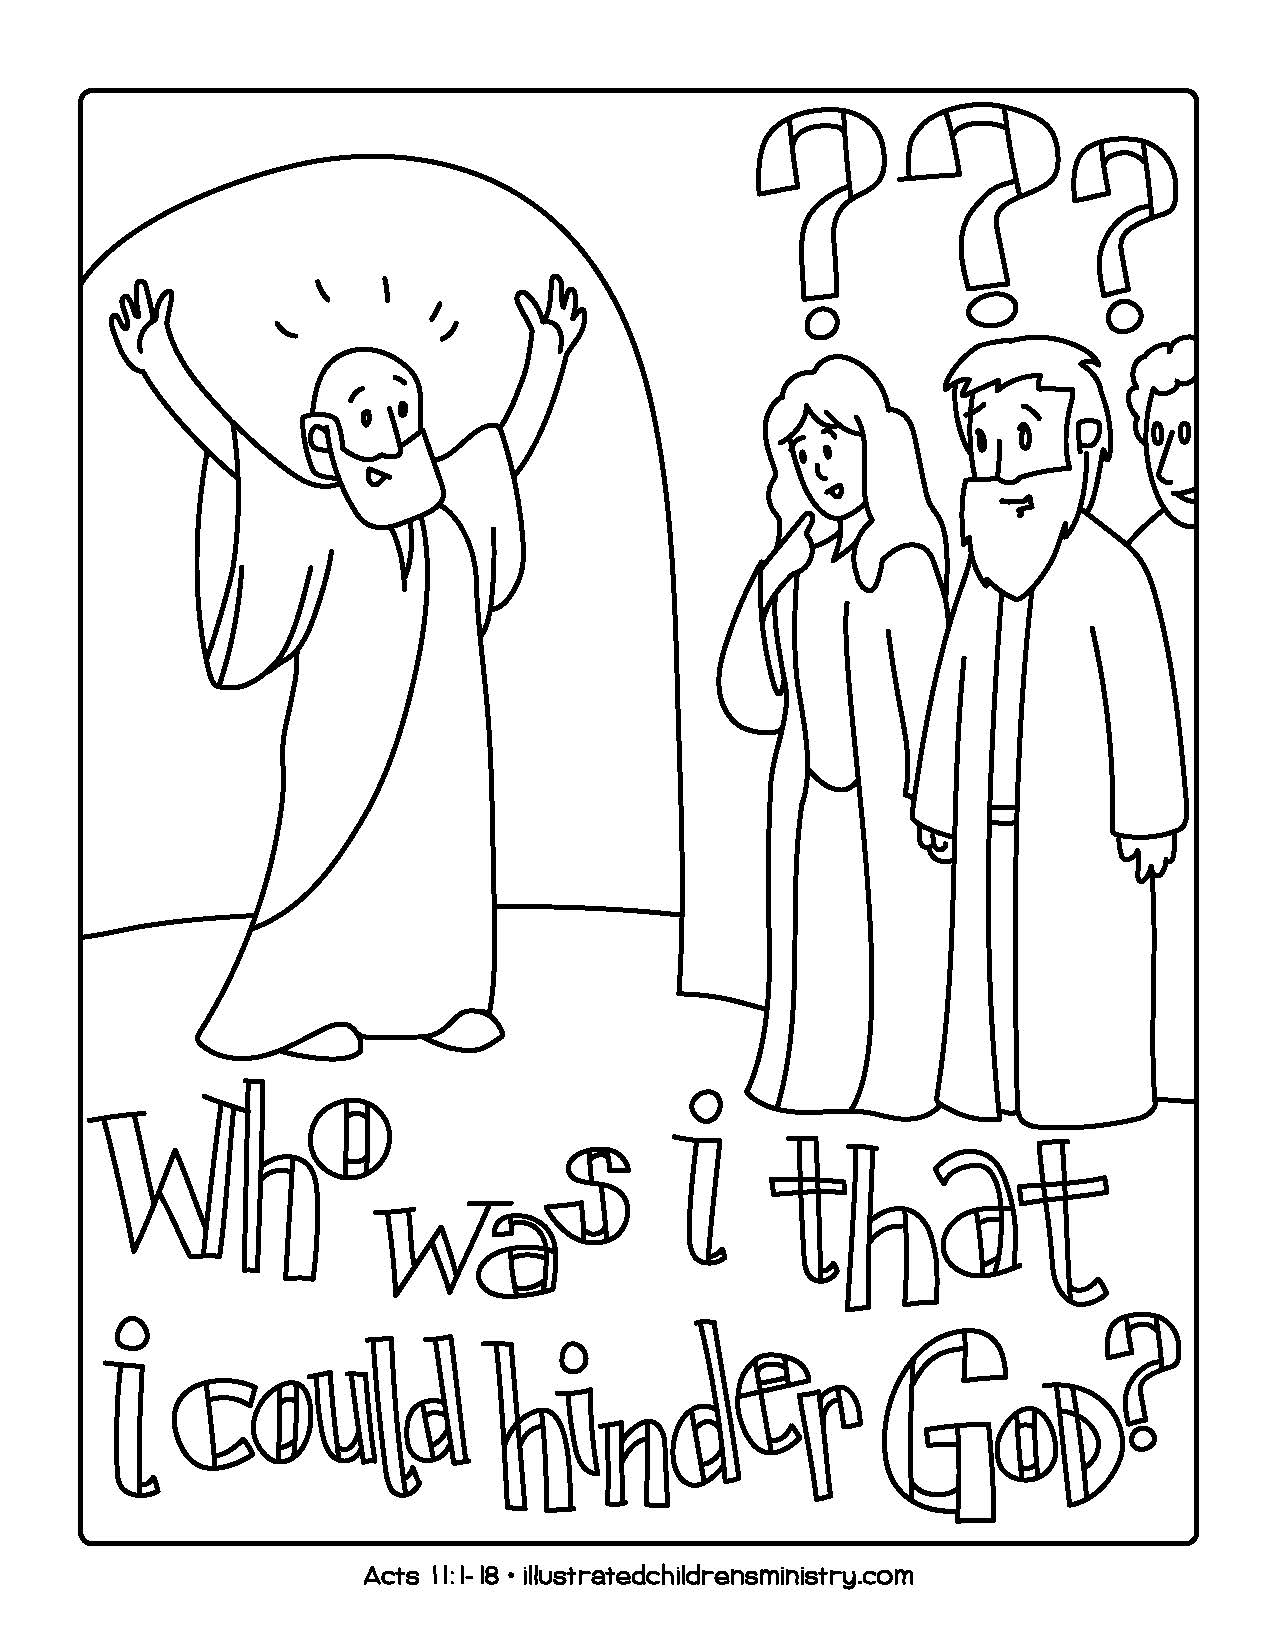 """Who was I that I could hinder God"" coloring page"